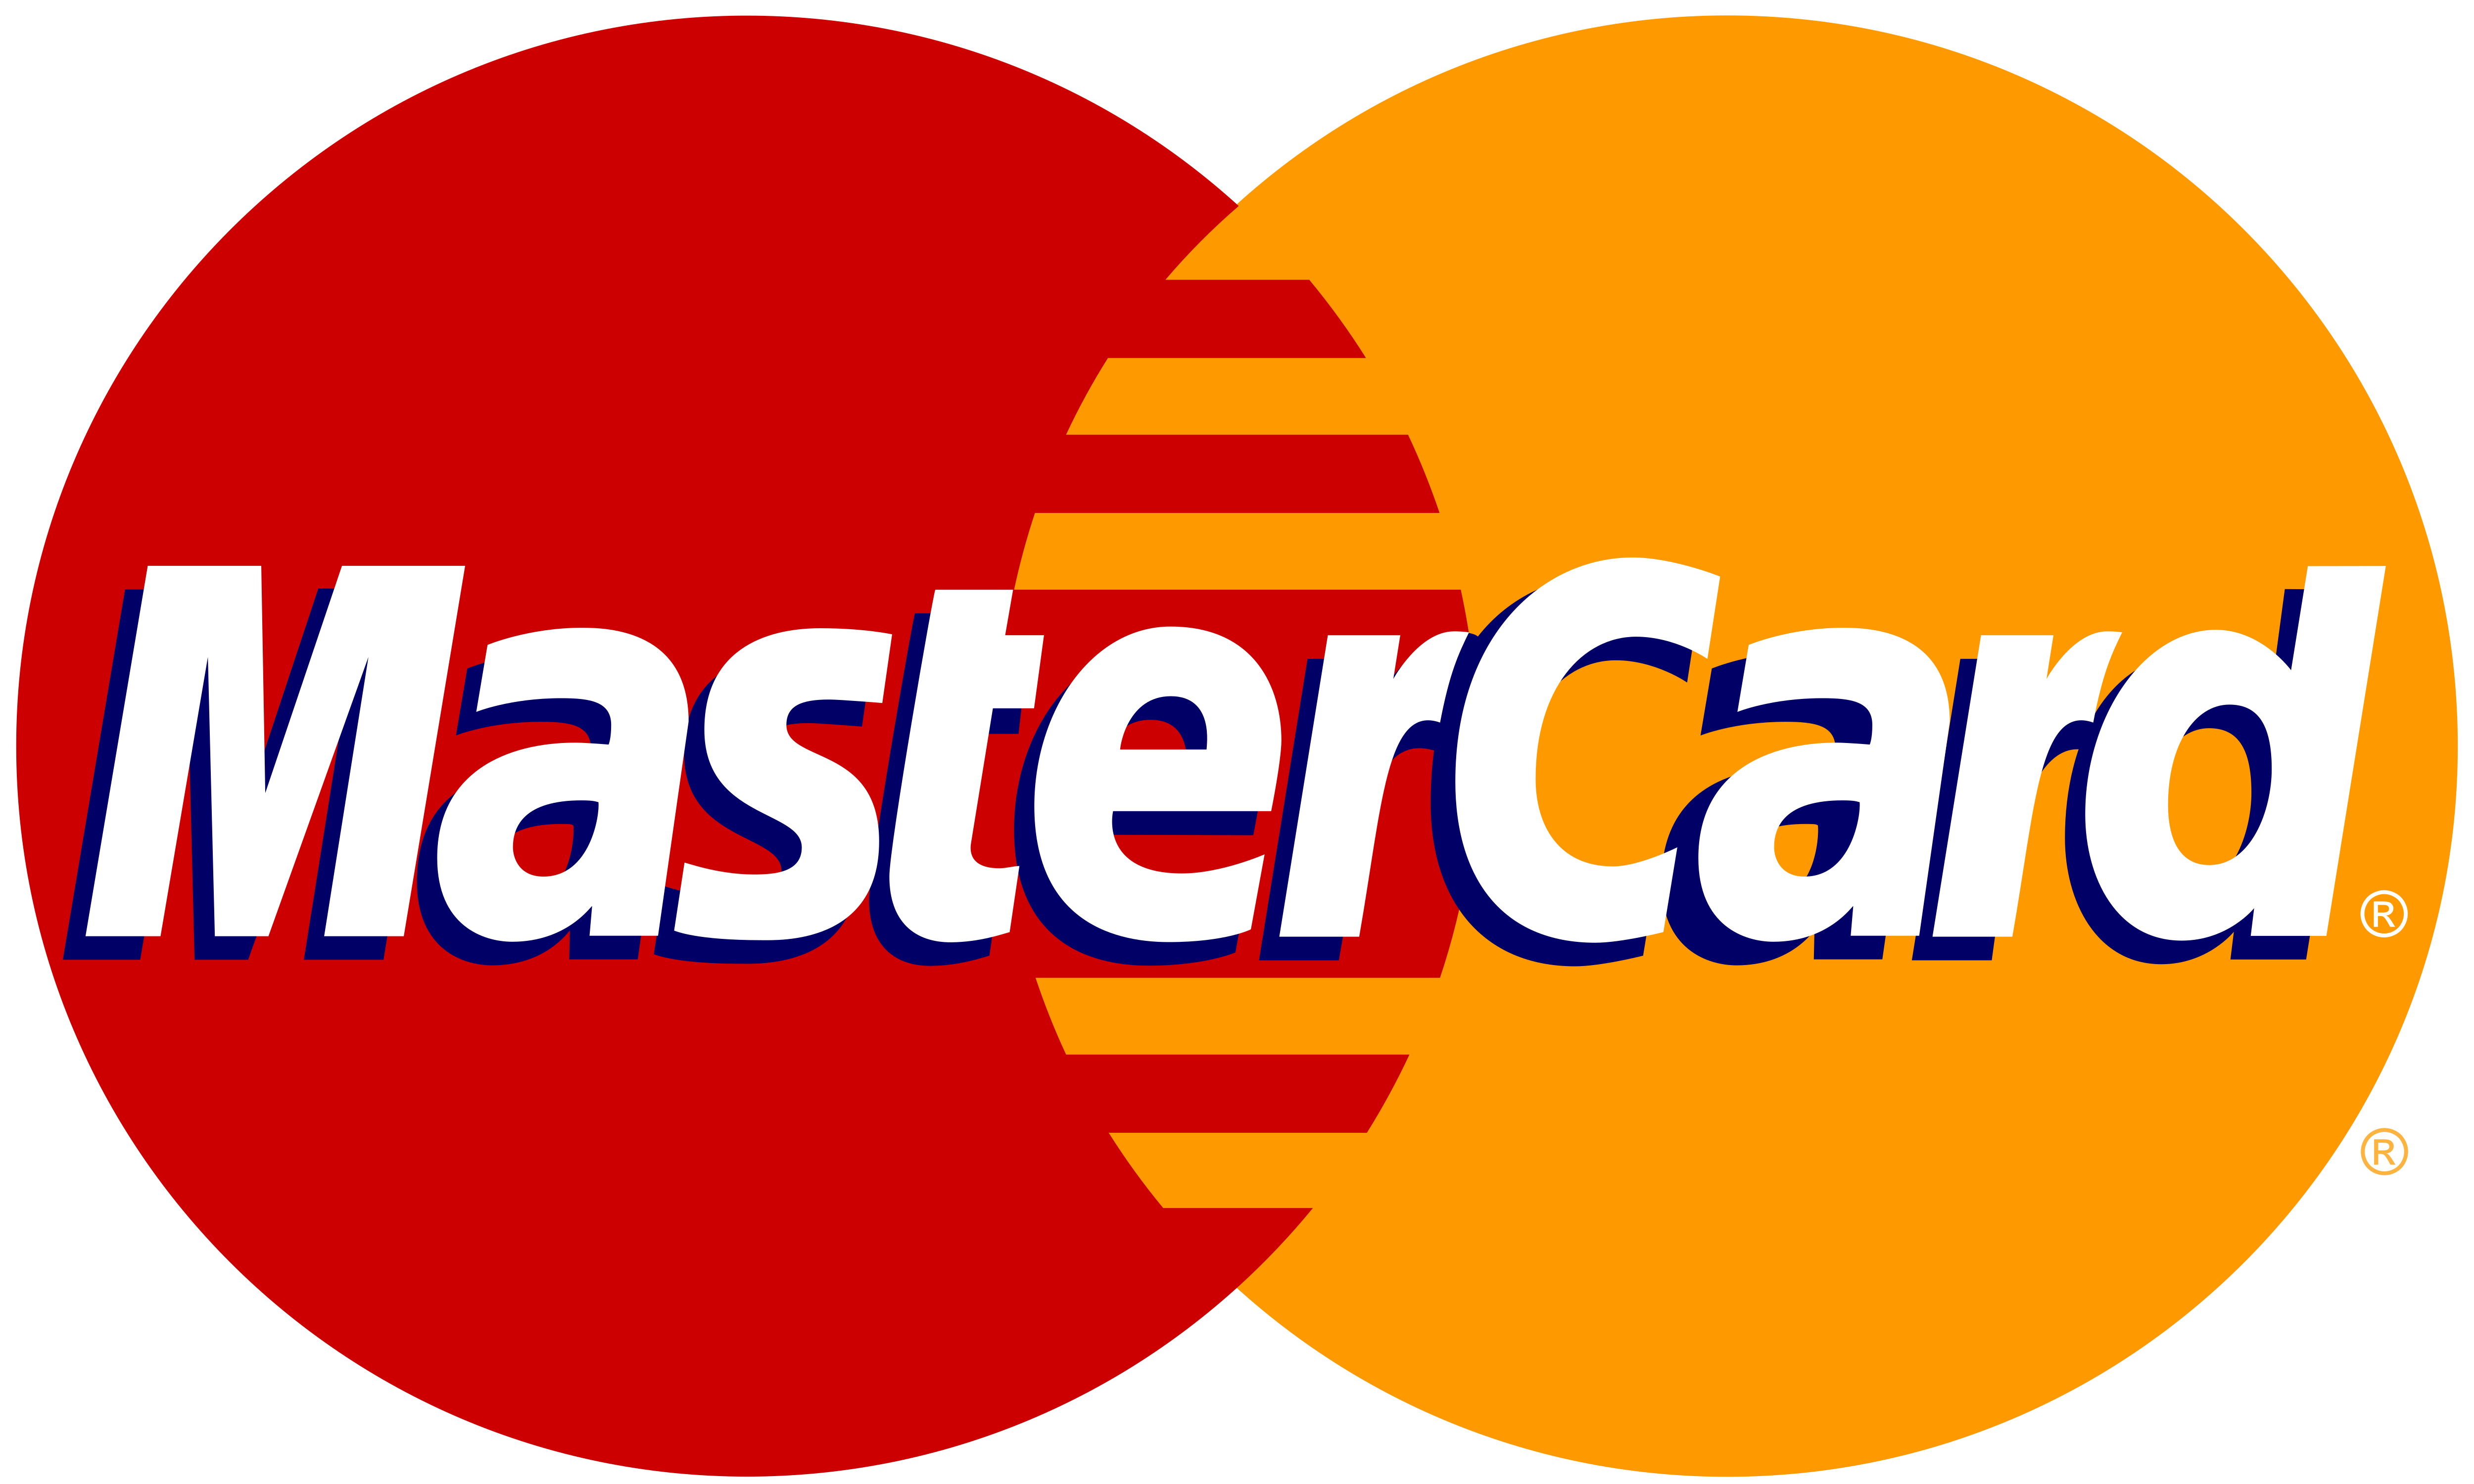 Mastercard Logo Png - MasterCard Logo - PNG E Vetor - Download #1230276 - PNG Images - PNGio